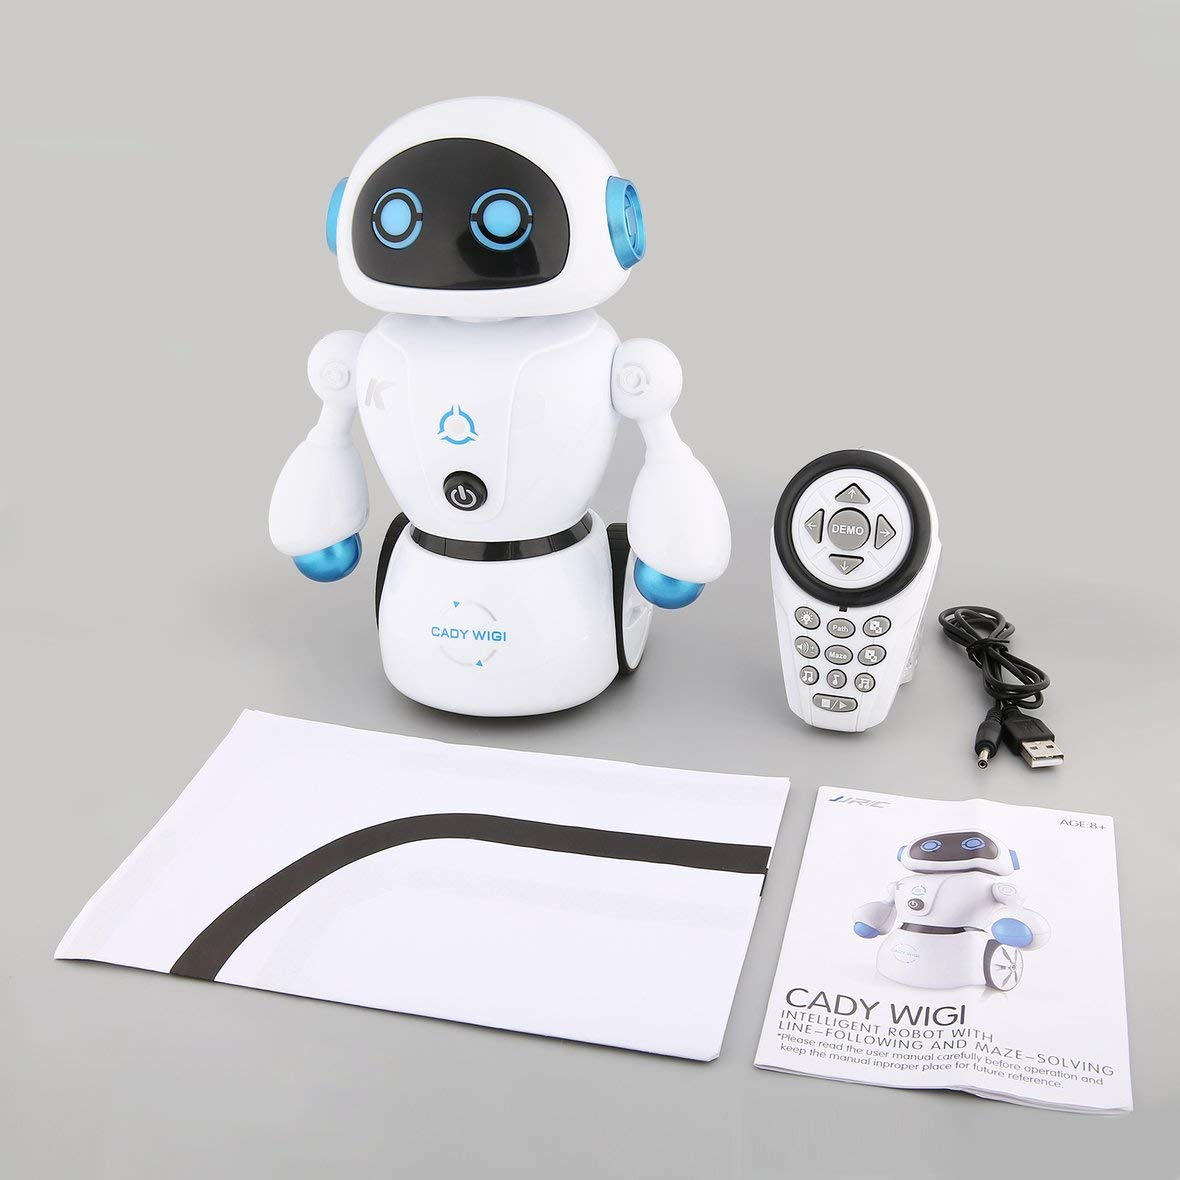 Tivolii JJR/C R6 Cady WIGI Intelligent RC Robot Music Dance Smart Robot Programmable Line-Following Maze-Solving Kid Toy Gift